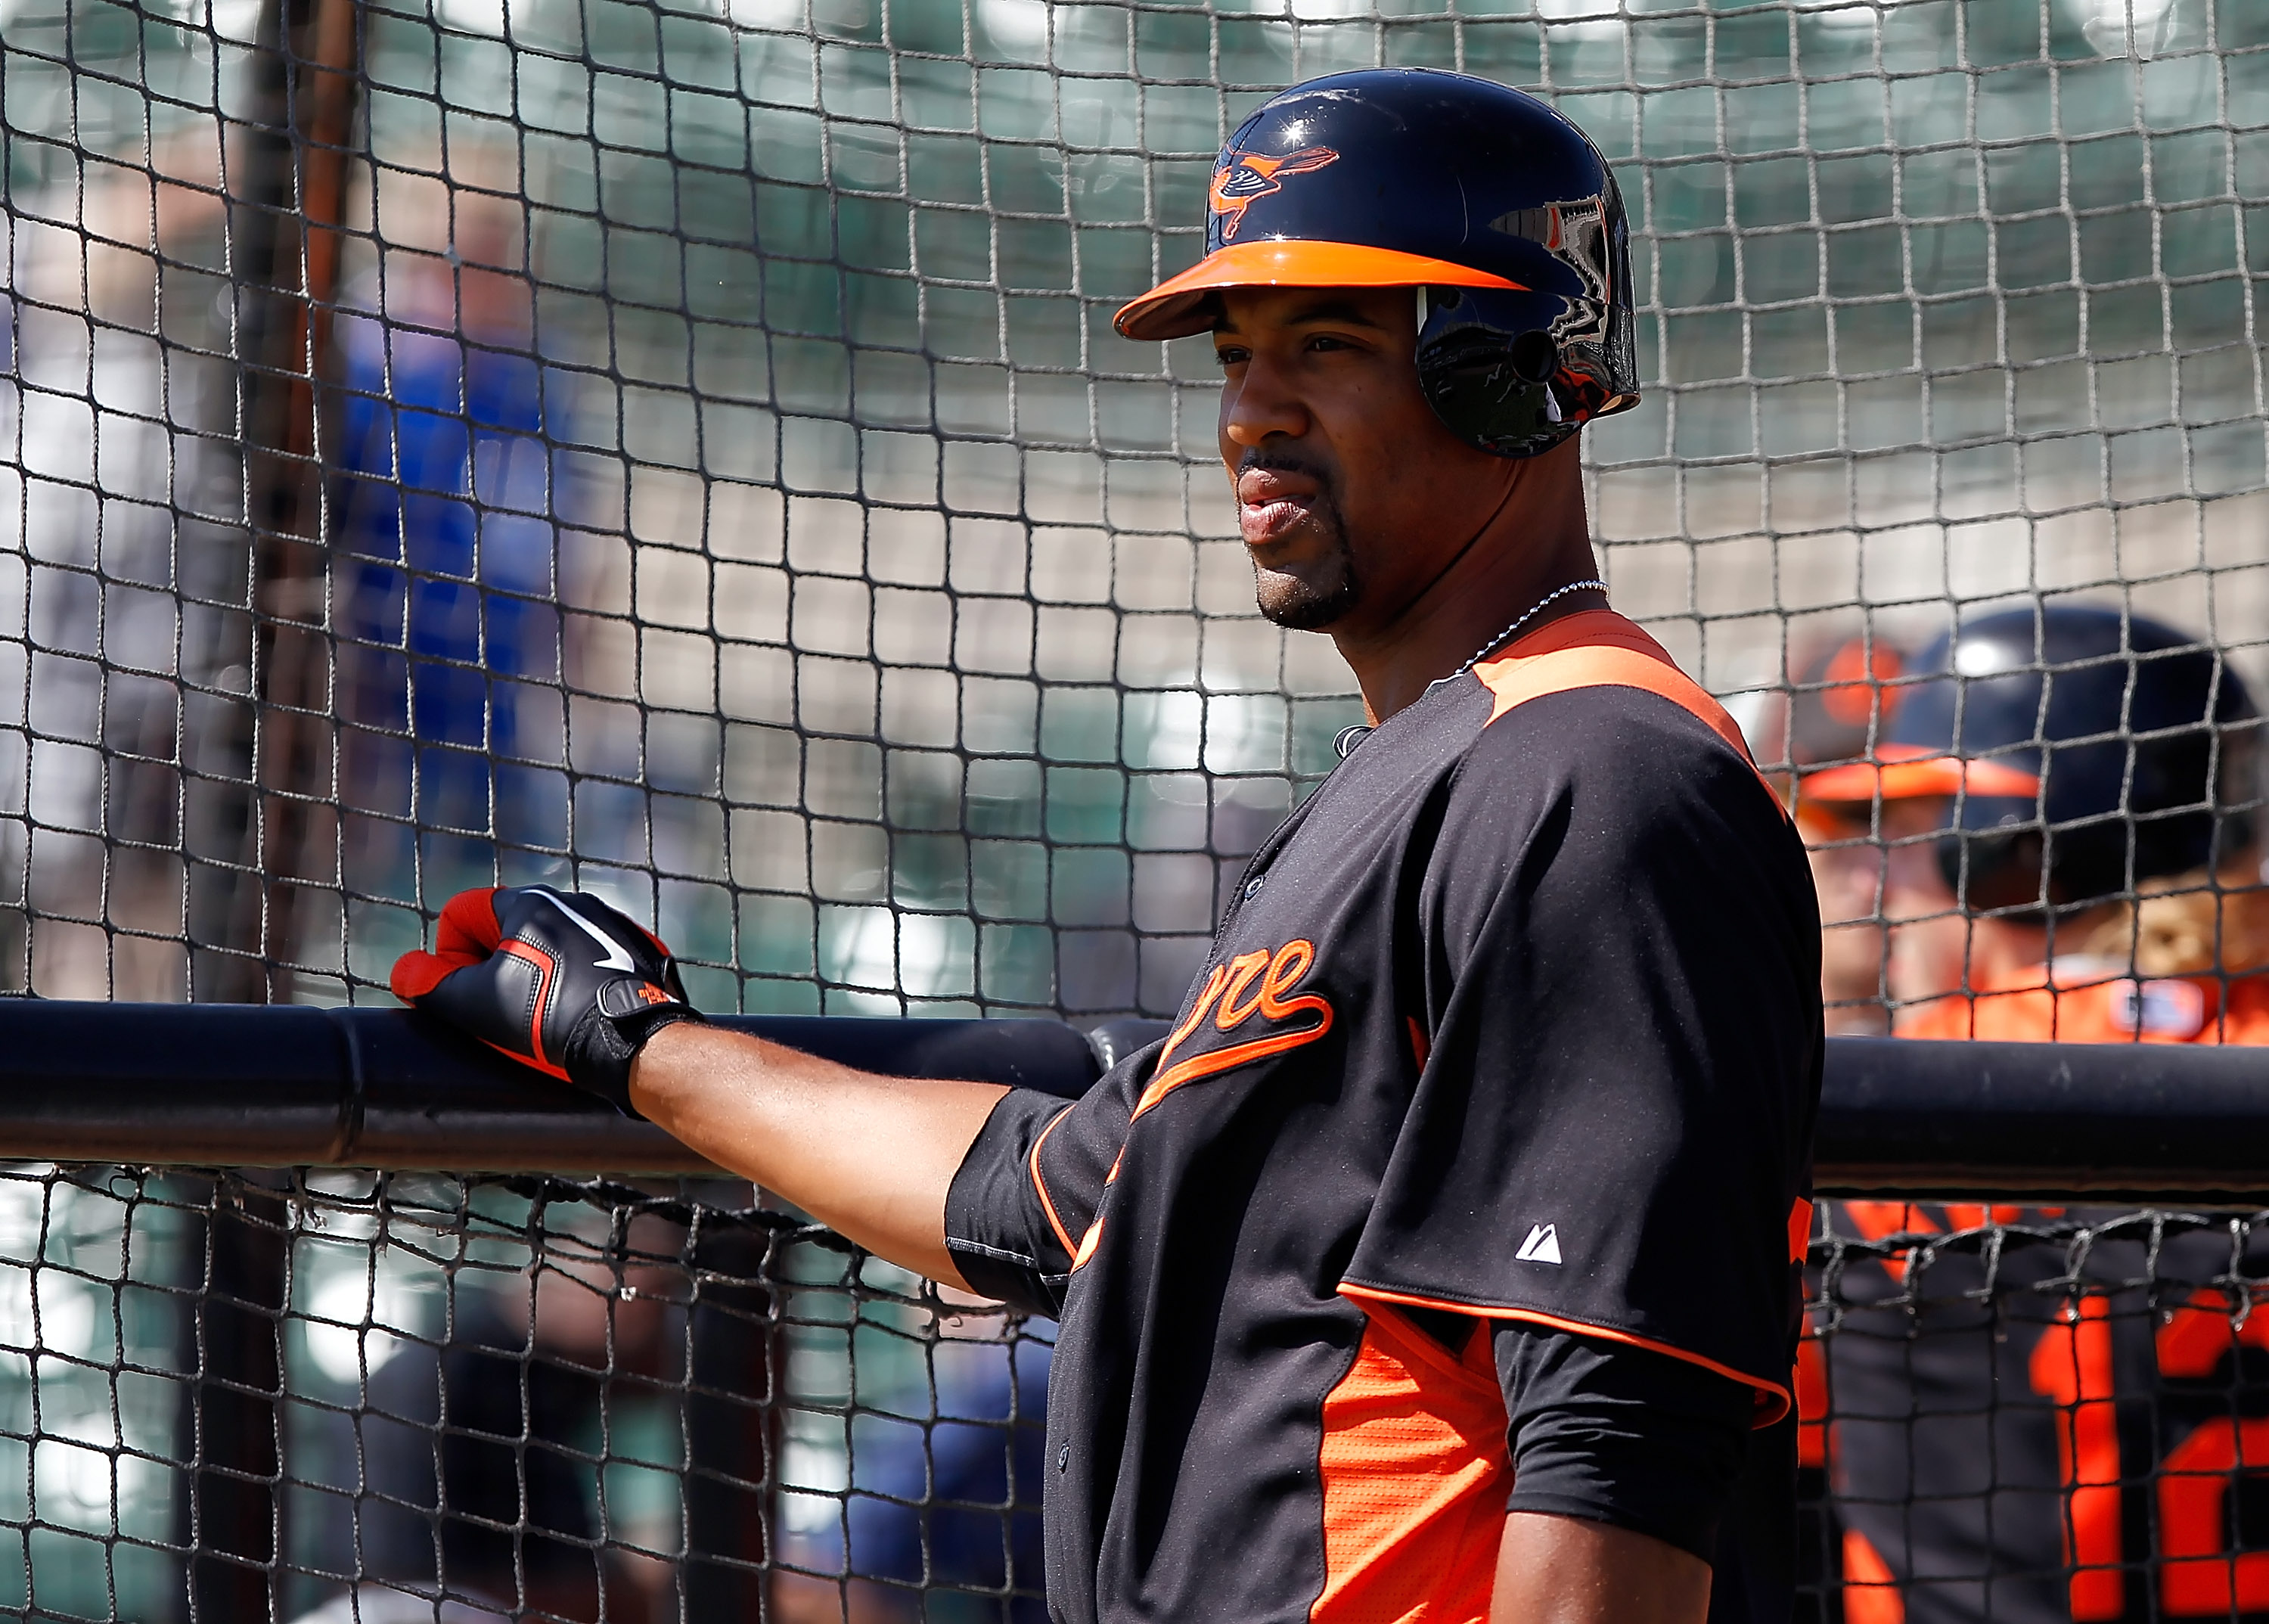 SARASOTA, FL - MARCH 03:  Infielder Derrek Lee #25 of the Baltimore Orioles takes batting practice just before the Grapefruit League Spring Training Game against the Minnesota Twins at Ed Smith Stadium on March 3, 2011 in Sarasota, Florida.  (Photo by J.